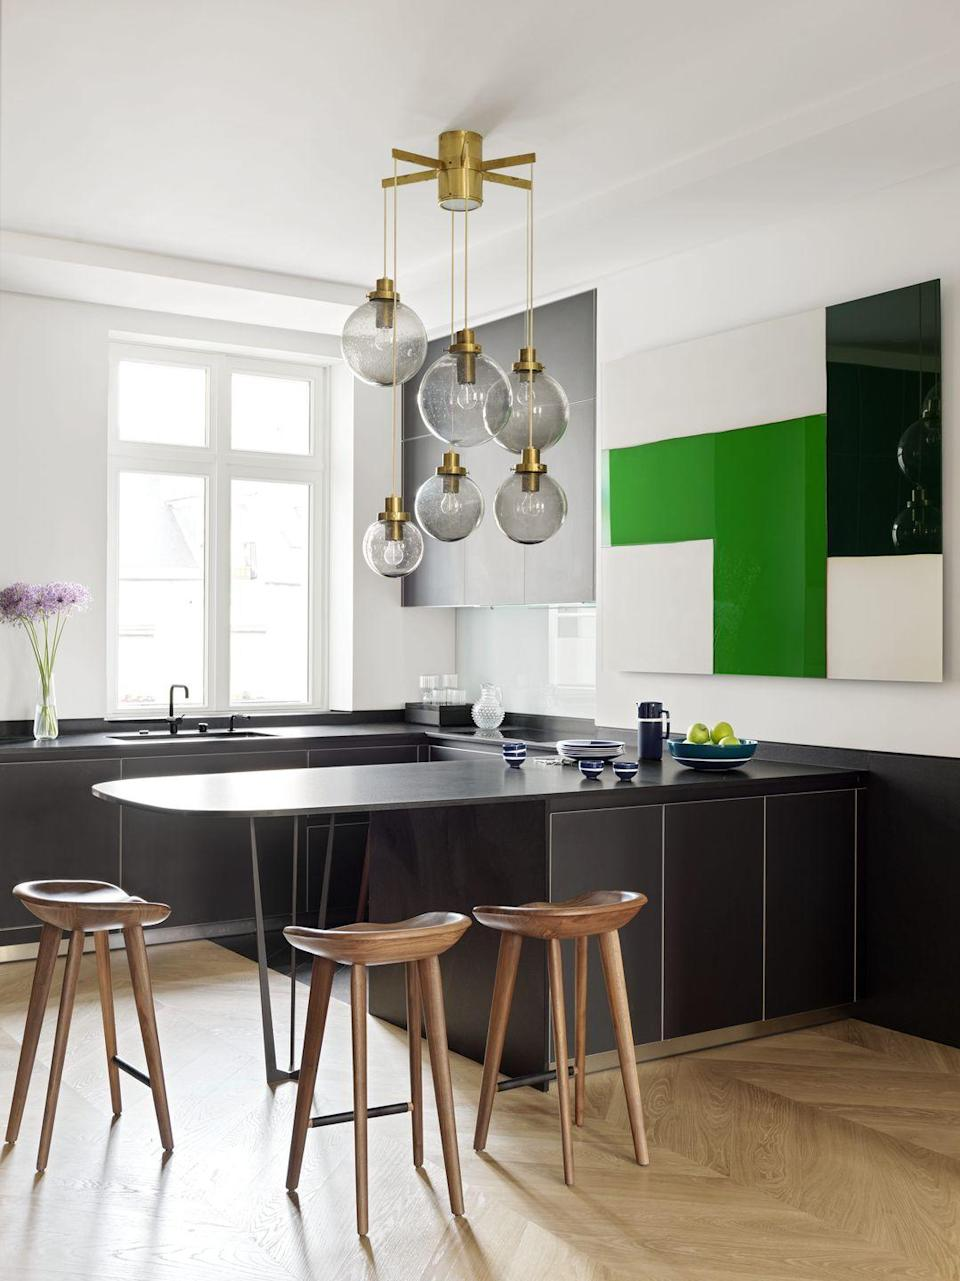 "<p>Would you ever guess this kitchen was originally built in the 1800s? While this <a href=""https://www.veranda.com/home-decorators/a30145144/le-berre-vevaud-paris-apartment/"" rel=""nofollow noopener"" target=""_blank"" data-ylk=""slk:dreamy Parisian apartment"" class=""link rapid-noclick-resp"">dreamy Parisian apartment</a> designed by <a href=""https://leberrevevaud.com/"" rel=""nofollow noopener"" target=""_blank"" data-ylk=""slk:Le Berre Vevaud"" class=""link rapid-noclick-resp"">Le Berre Vevaud</a> is rooted in historic, classical architecture, it's bright and modern design welcomes the home into the 21st century. Case in point is this sleek kitchen, with its focal point being 1950s blown-glass Lustre globes purchased at an auction from Piasa, which pairs well with contemporary art and the dramatic dark countertops and cabinetry. </p>"